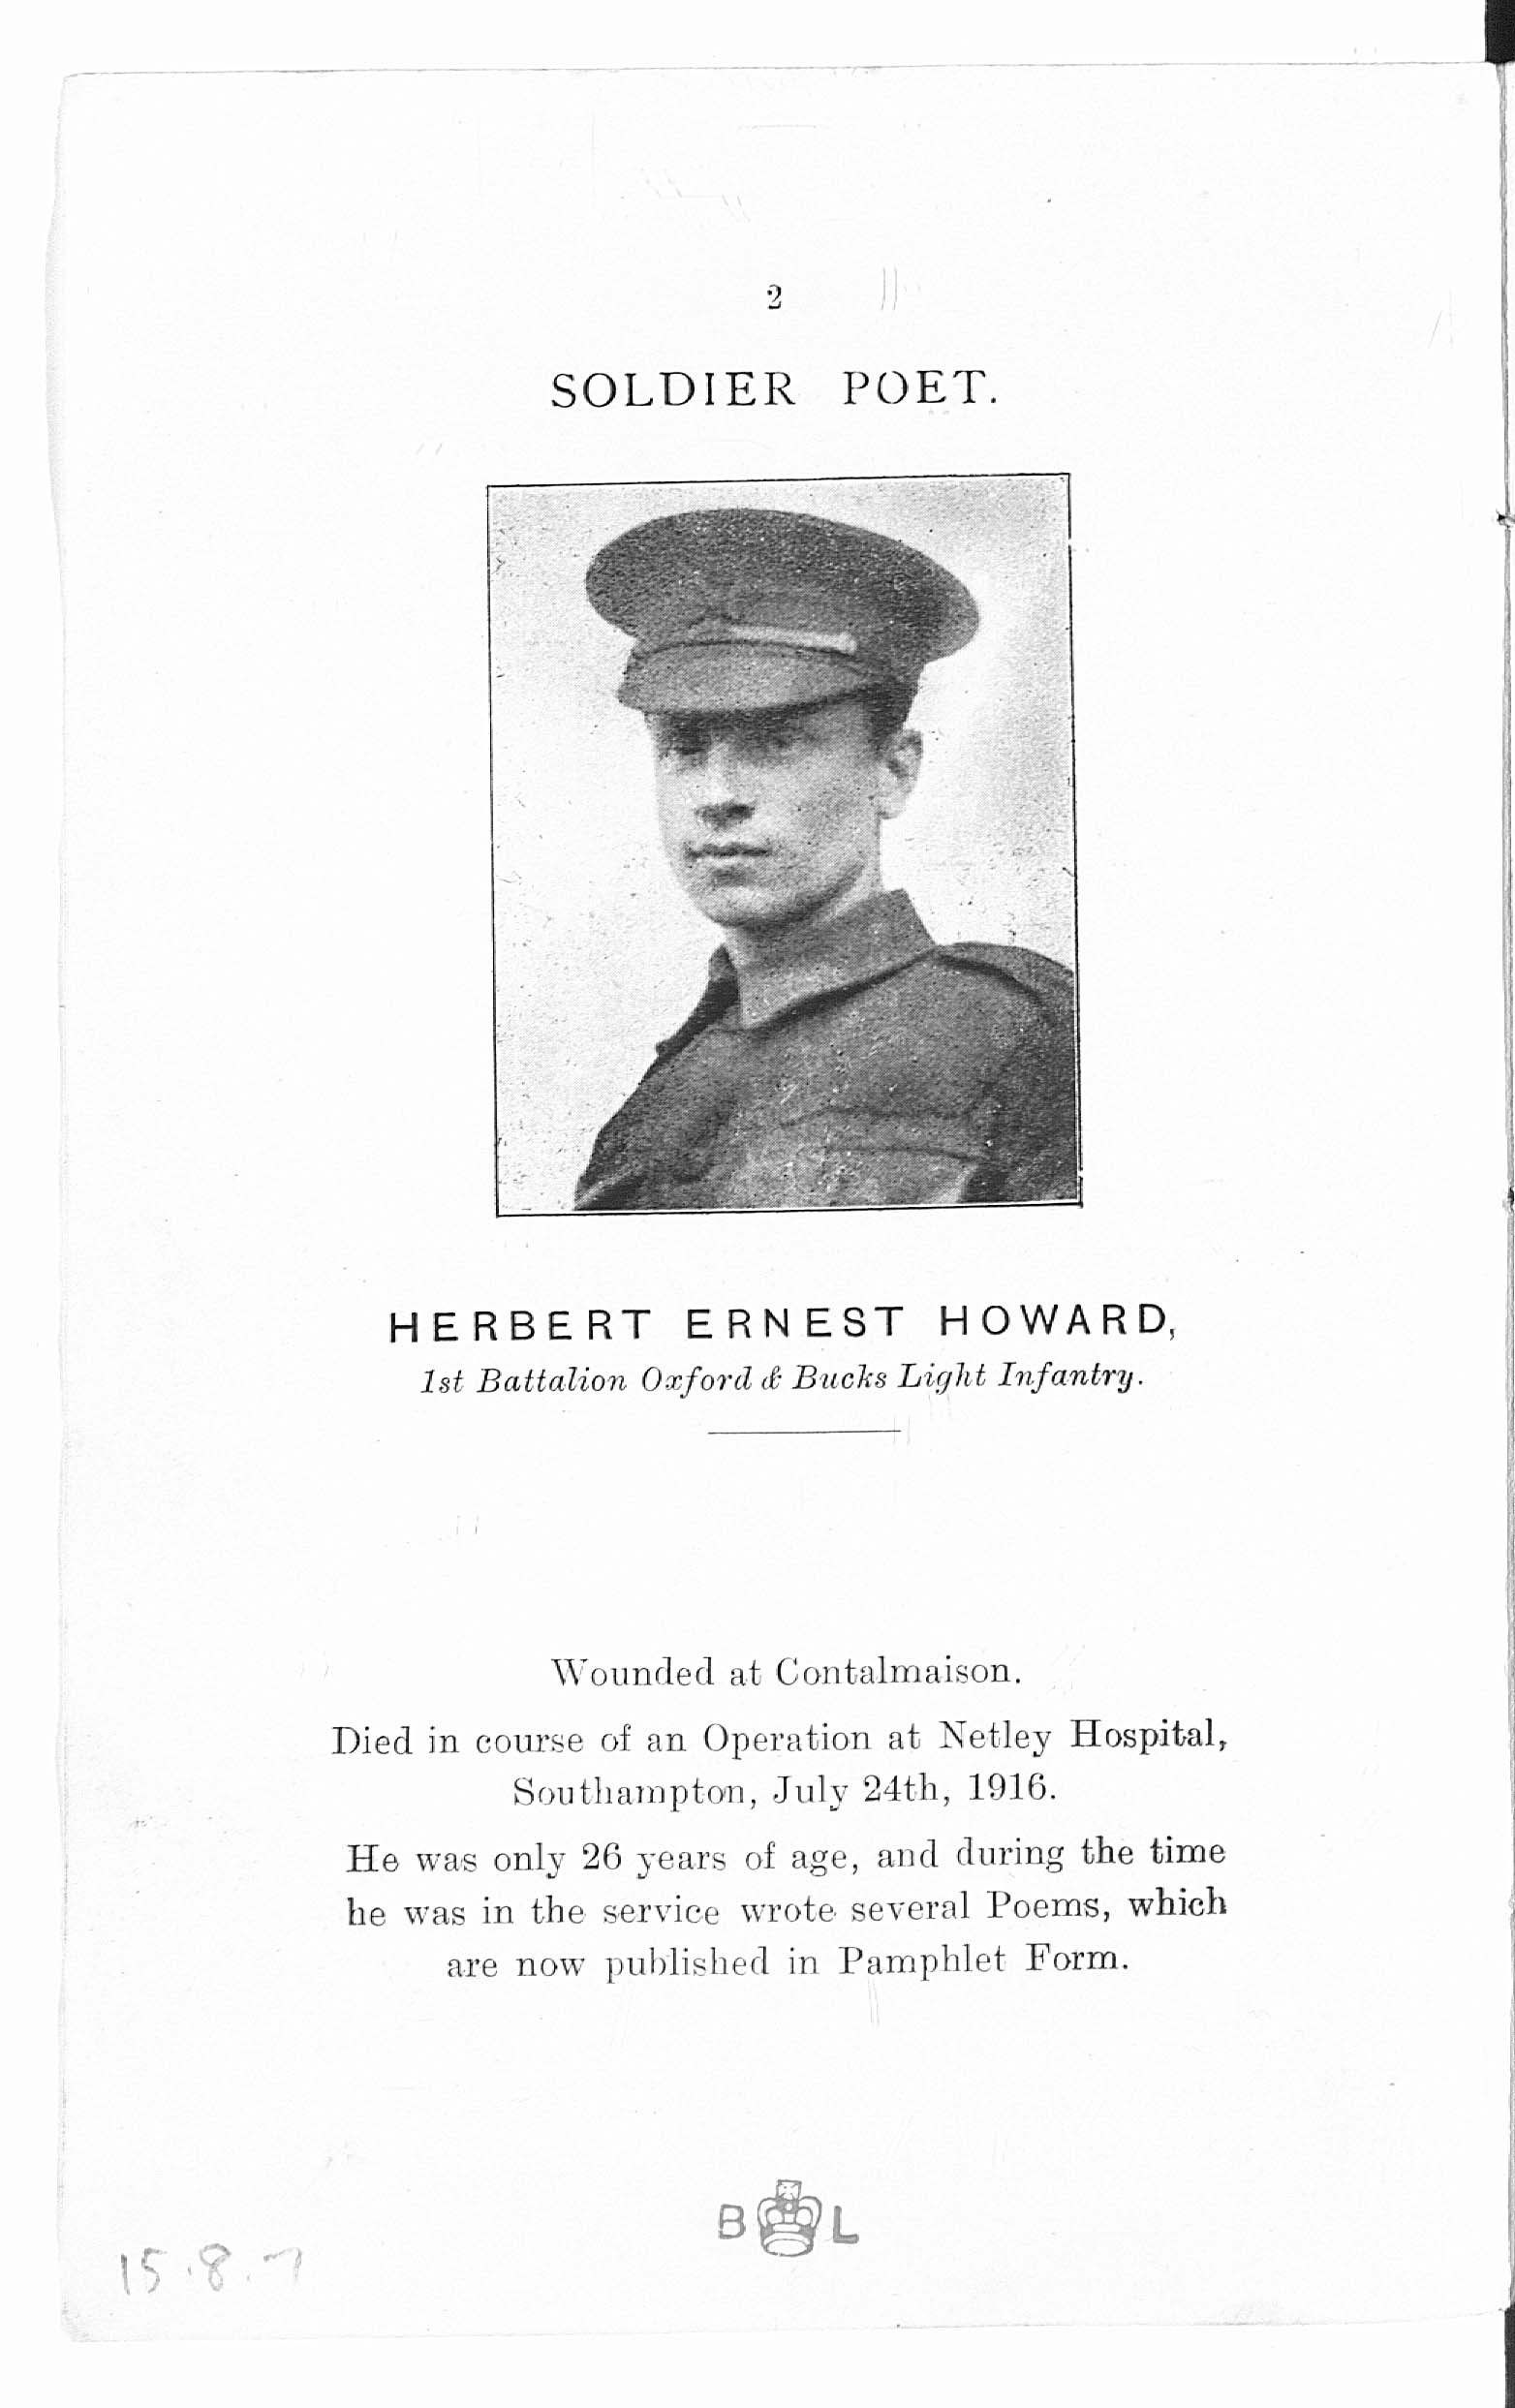 'Verses from the Trenches', a volume of poems by Private Herbert Ernest Howard, published after his death in July 1916.